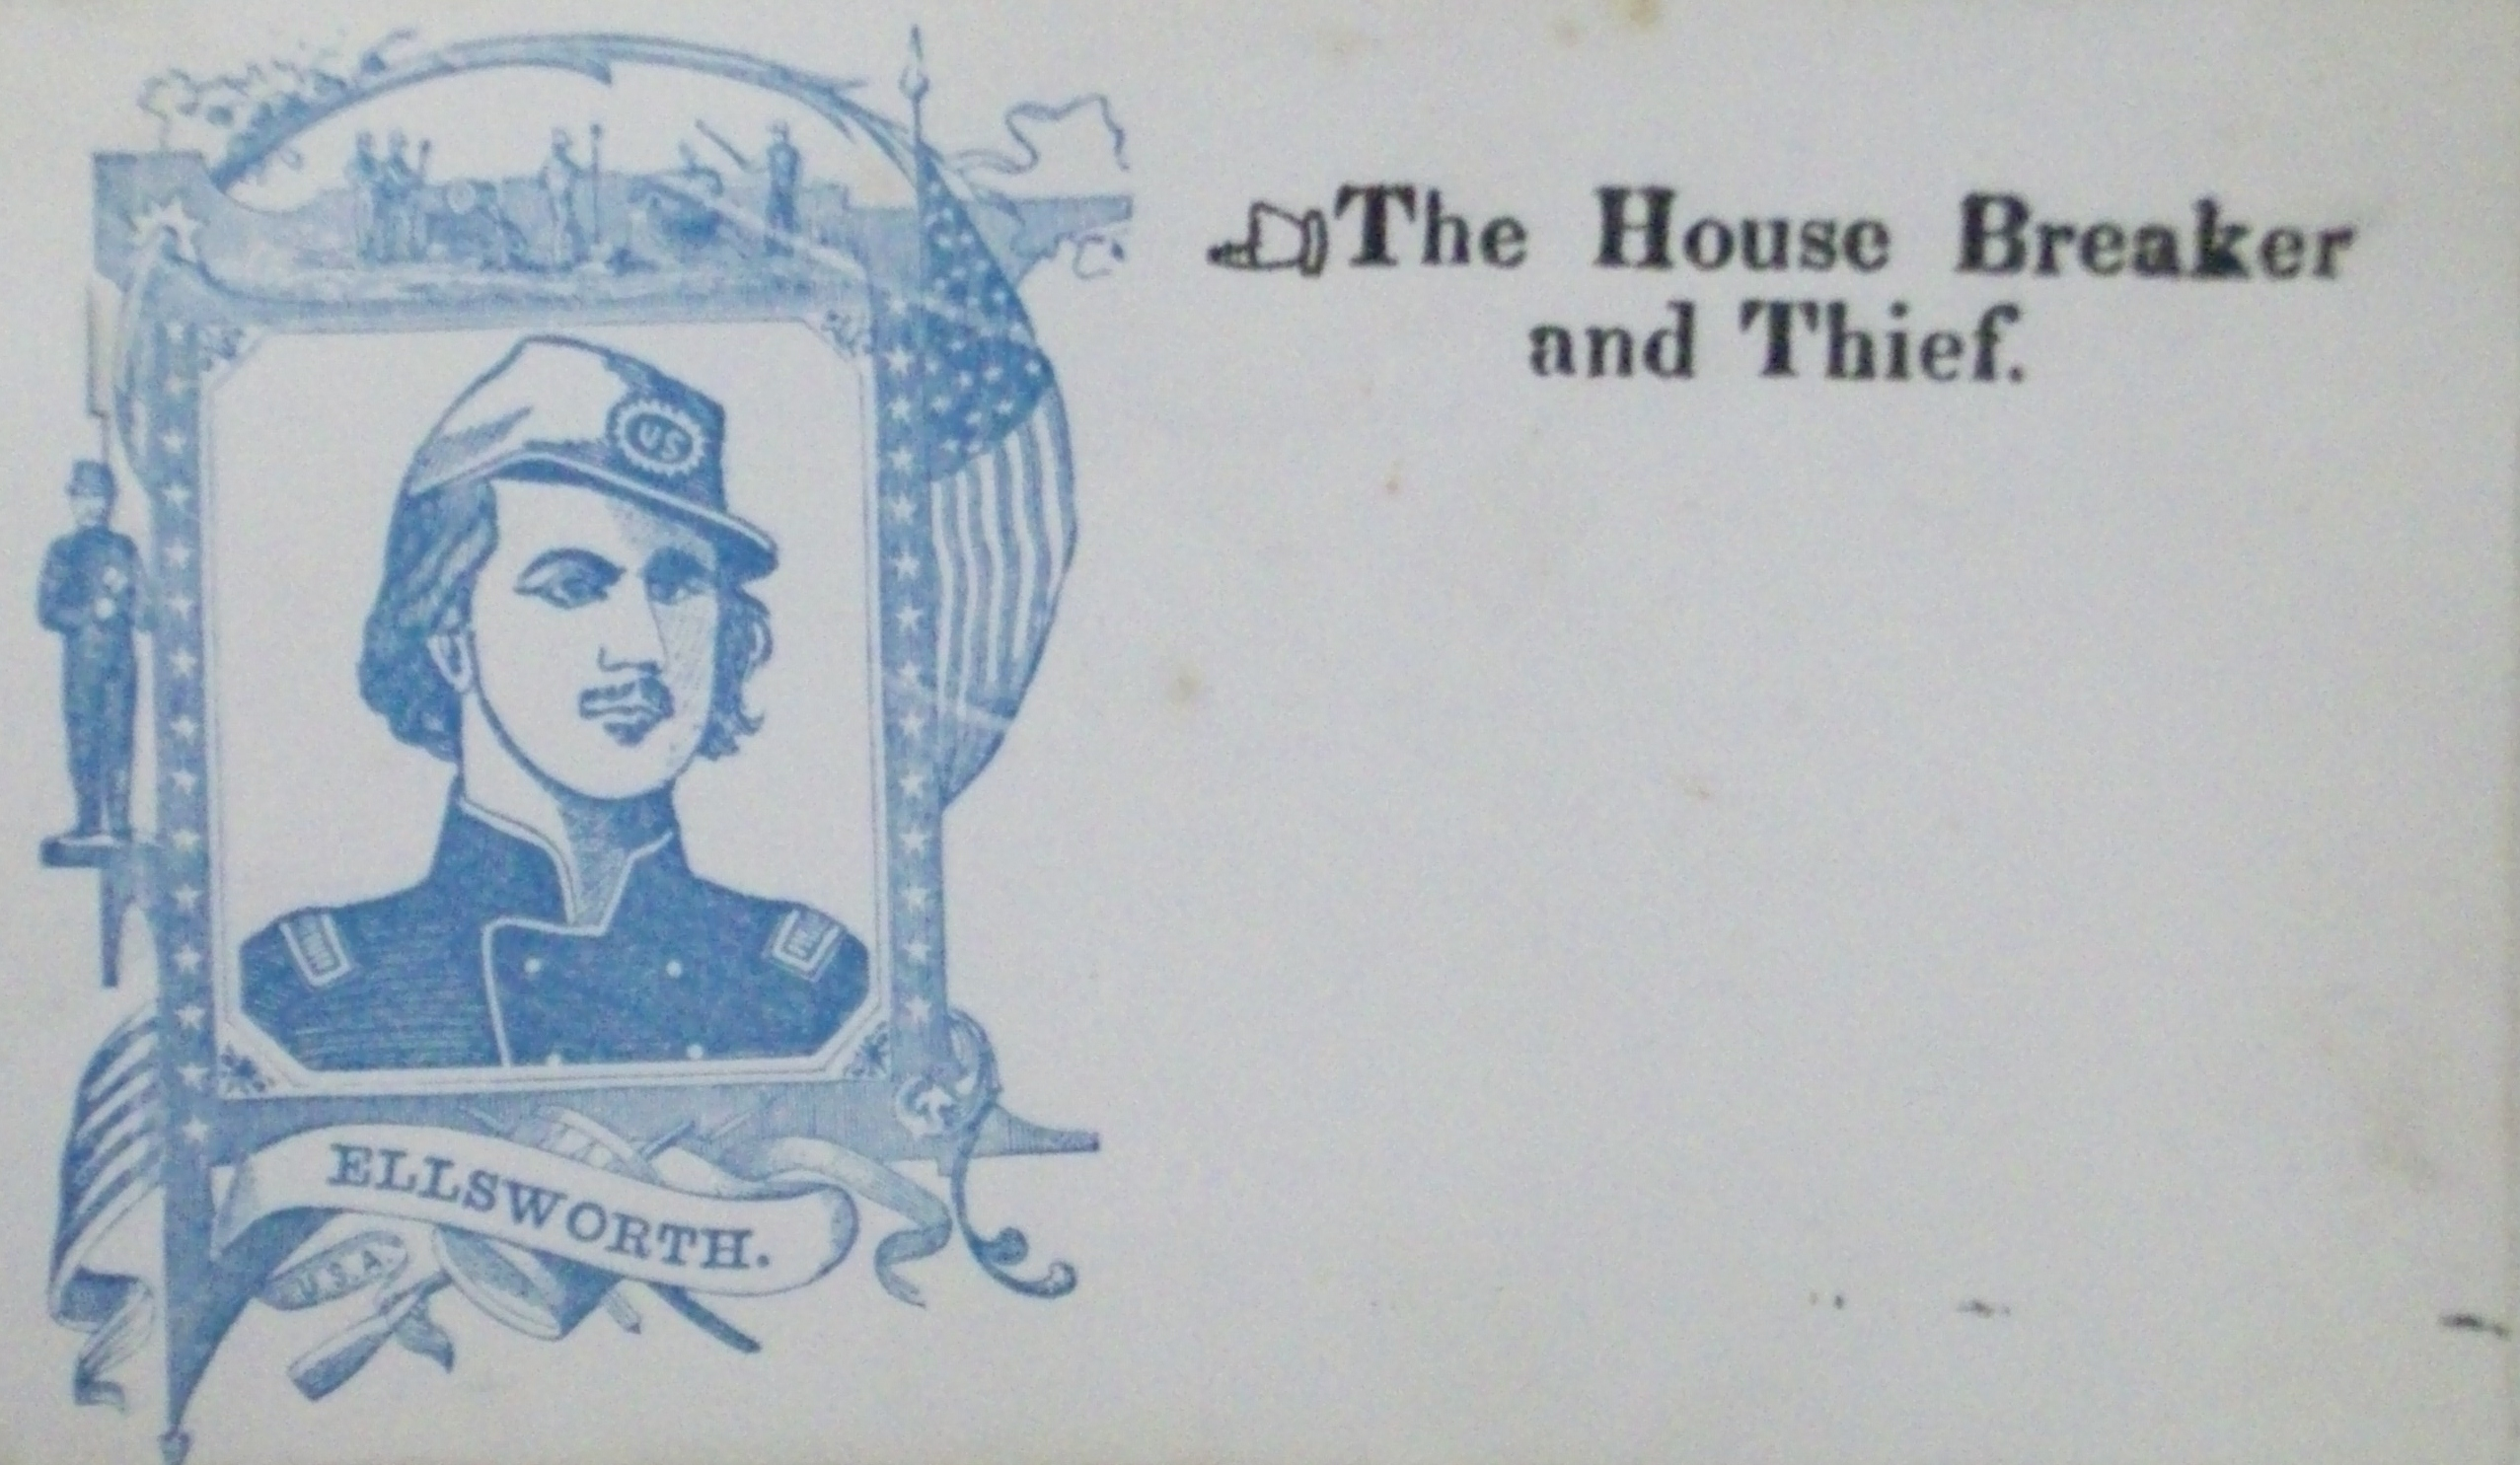 Confederate Envelope, The House Breaker and Thief